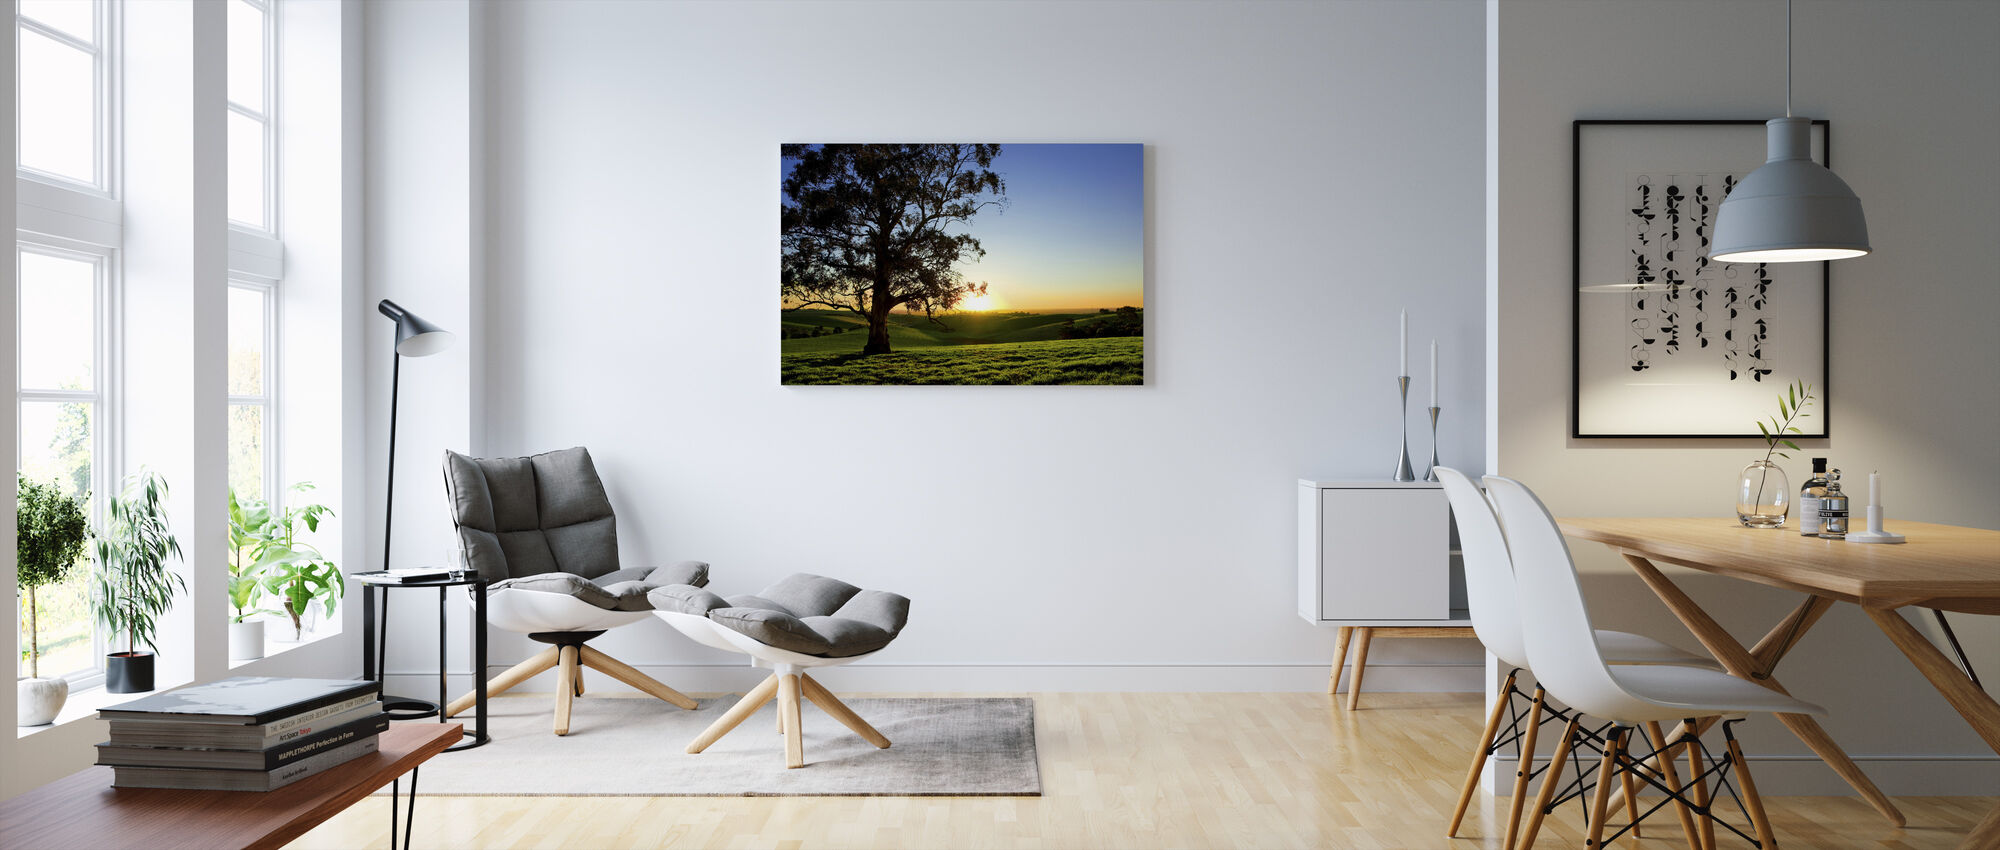 Beautiful Sunset Over a Rural Meadow - Canvas print - Living Room